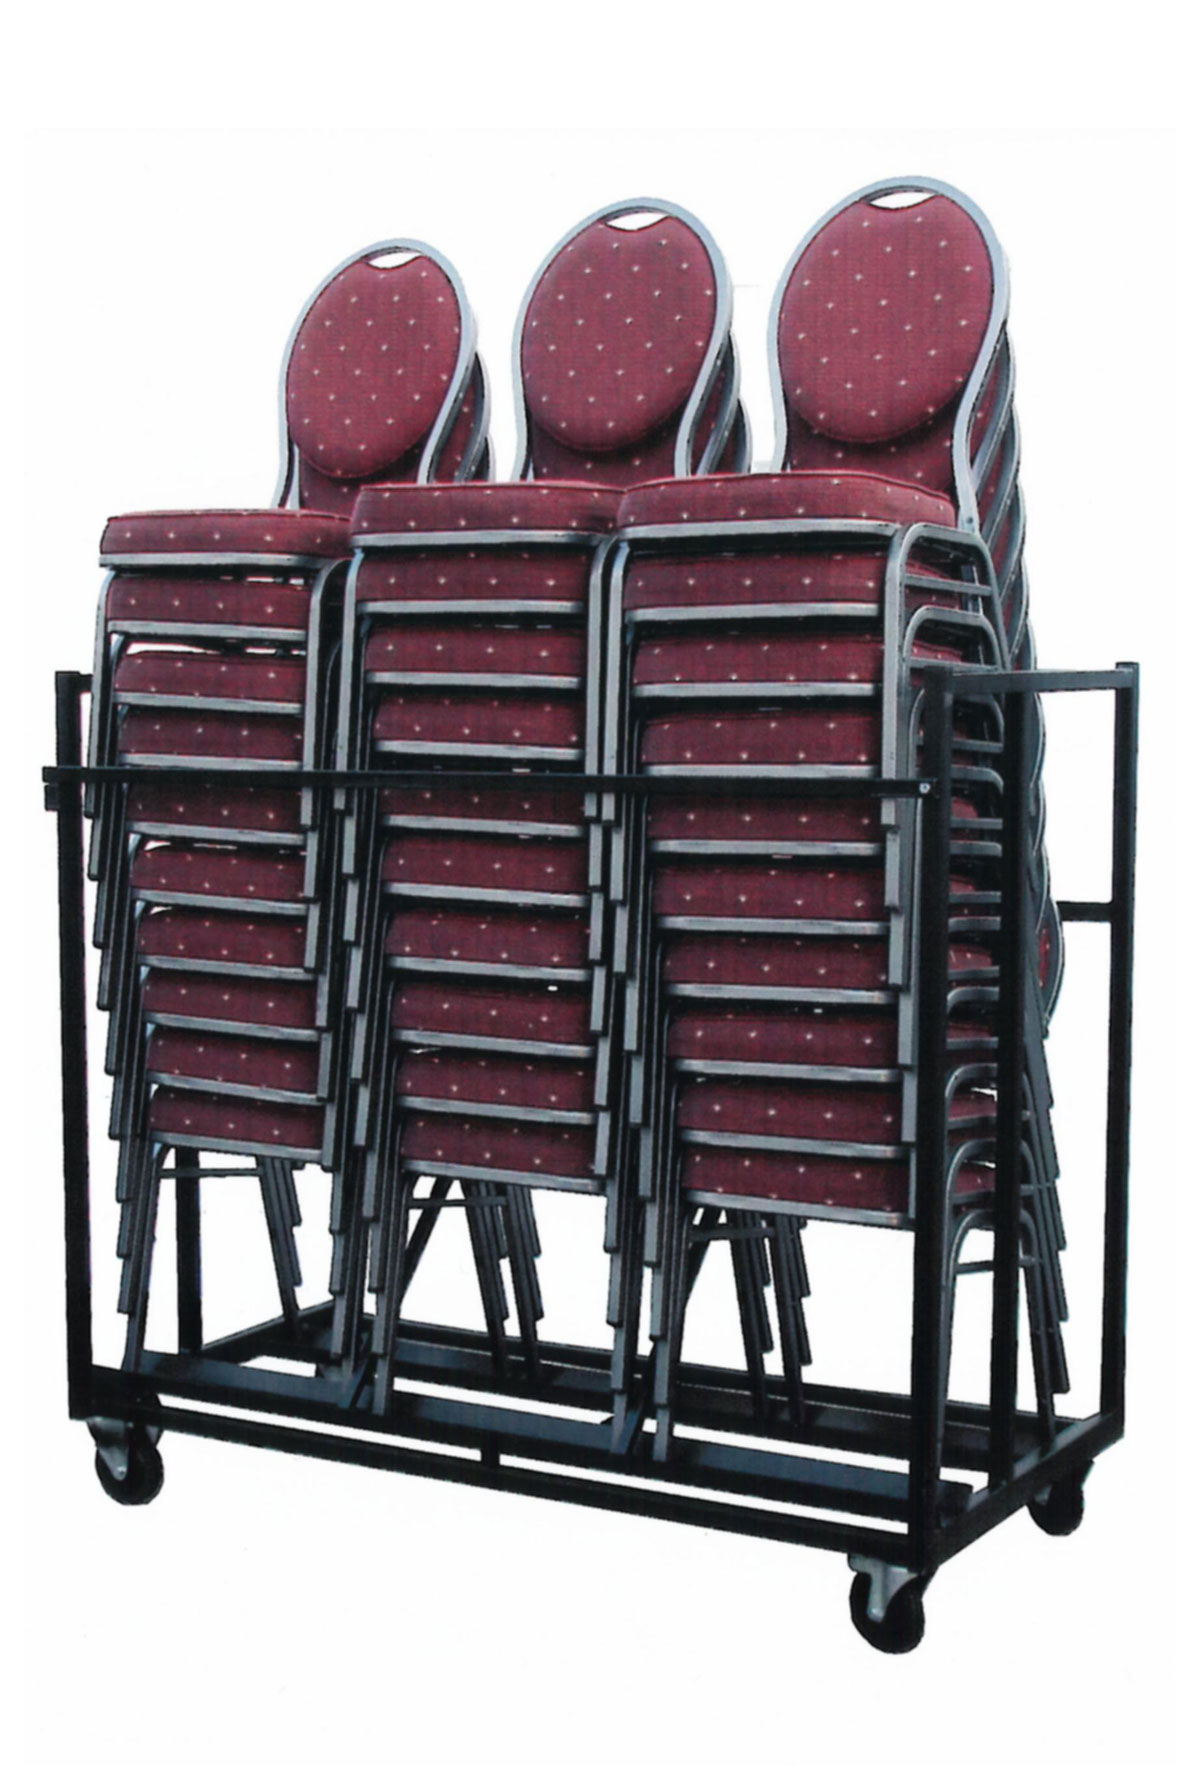 Transportkar voor 30 stackchairs